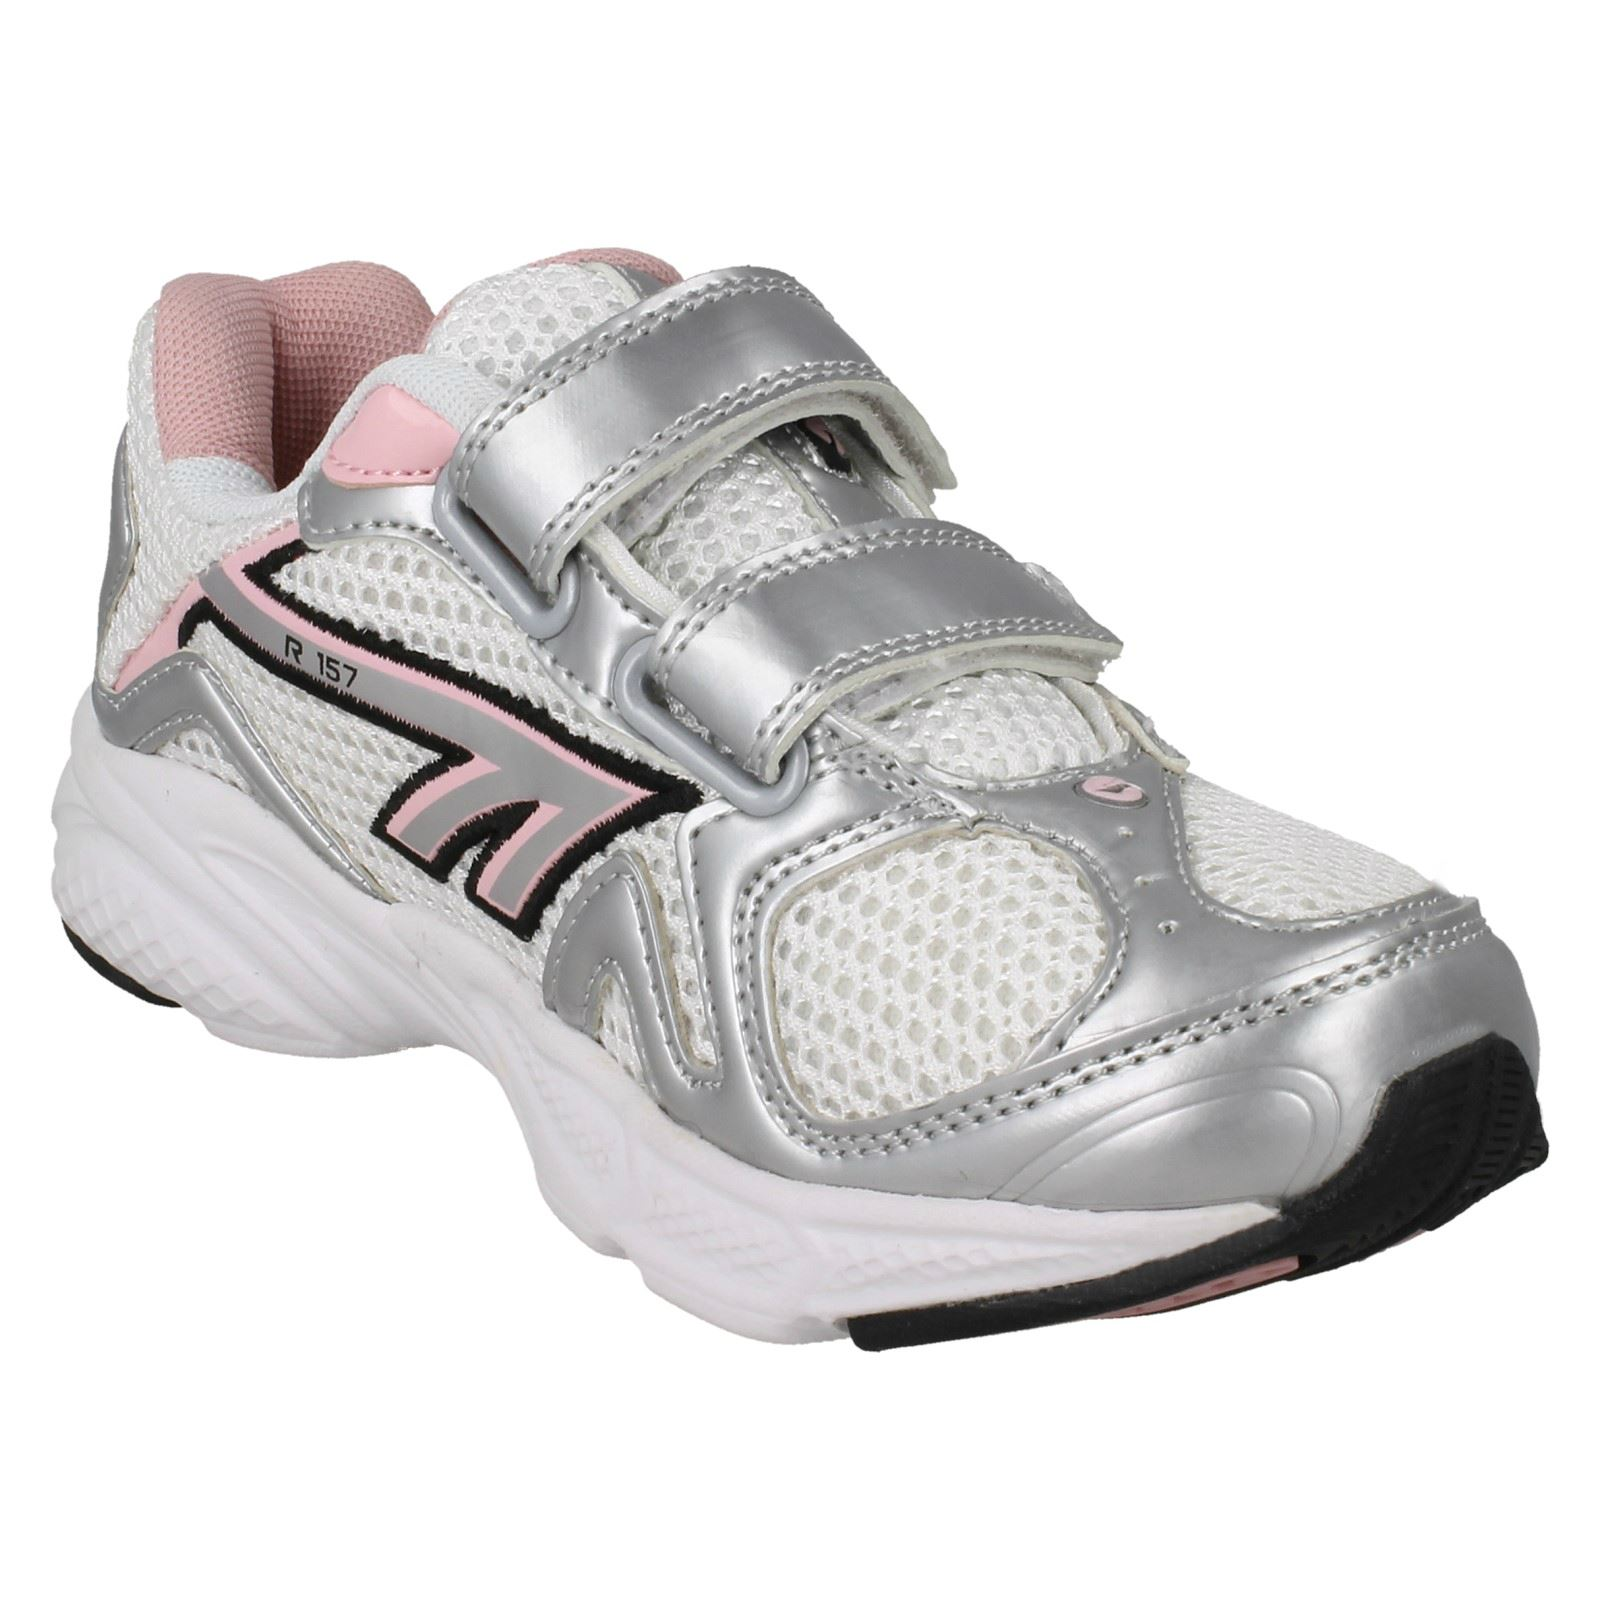 CHILDS HI TEC WHITE//SILVER//CANDY HOOK /& LOOP TRAINER STYLE R157 JRG EZ